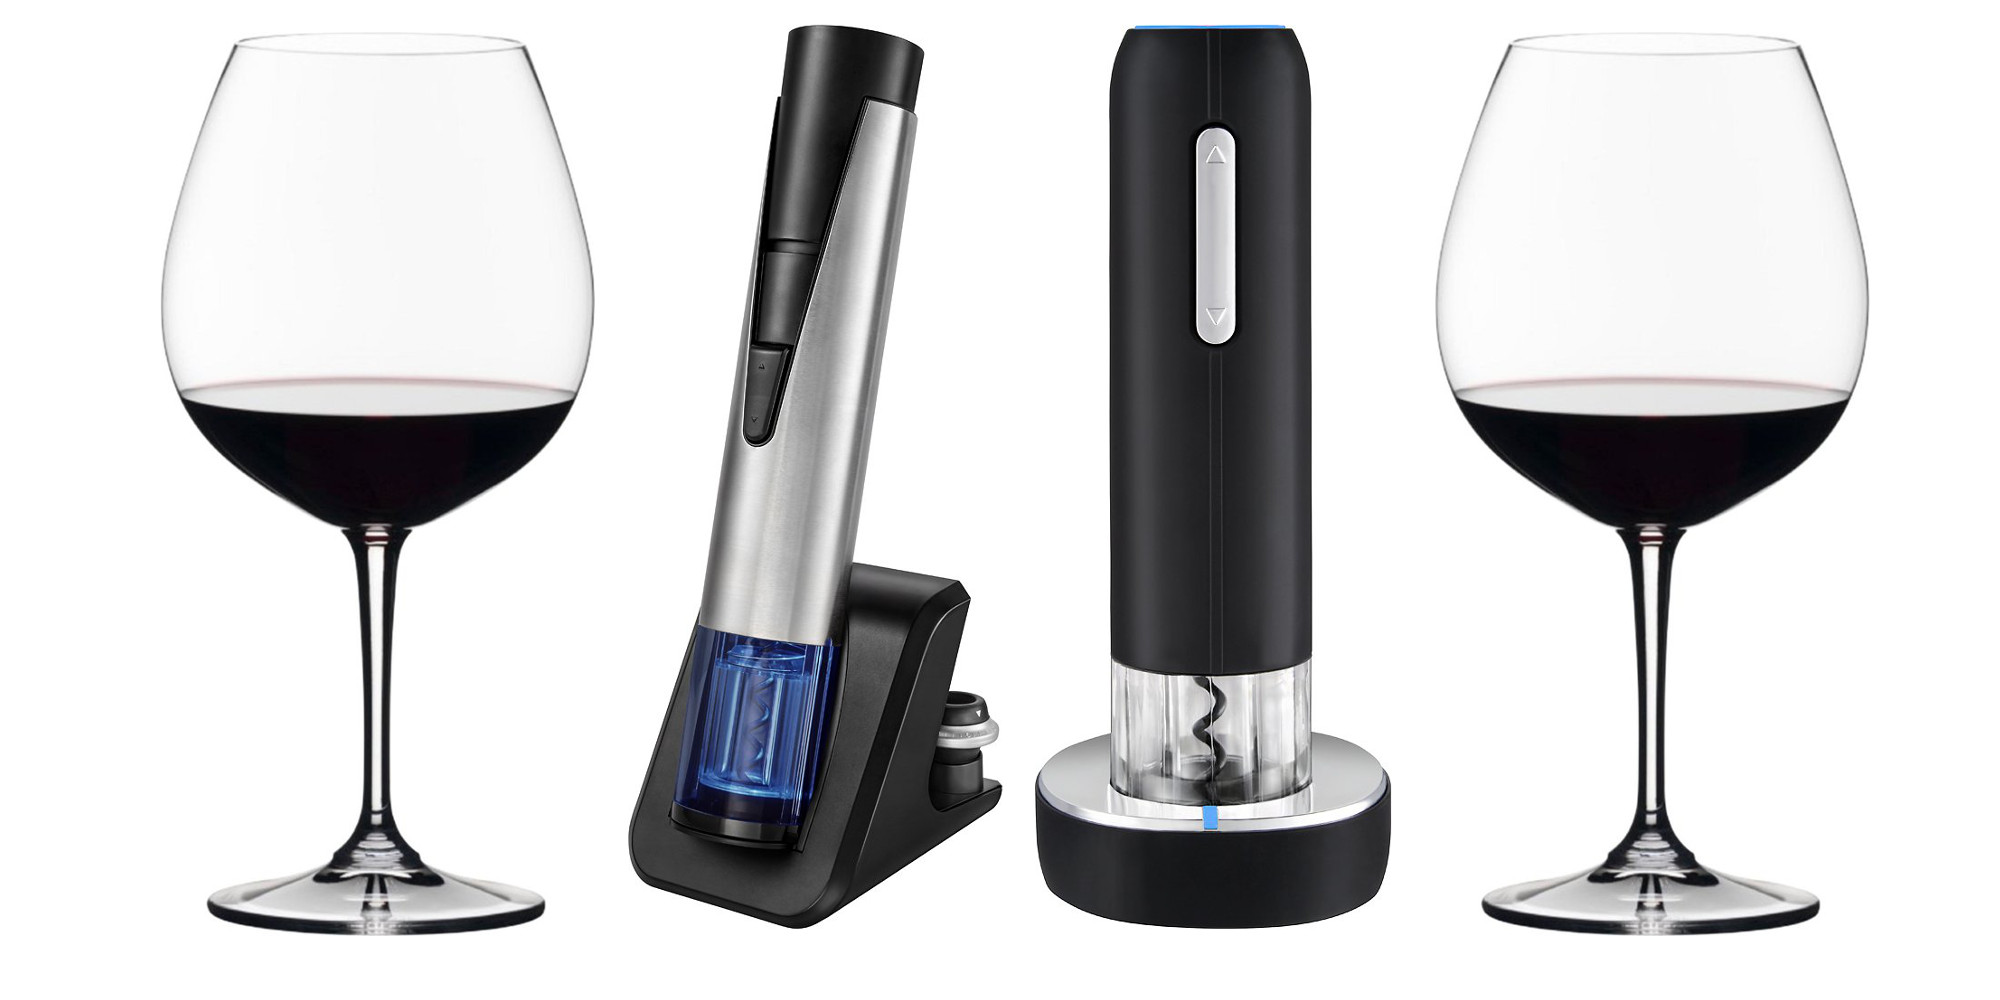 Up to 55% off wine accessories at Best Buy: electric openers, glasses and more from $7.50